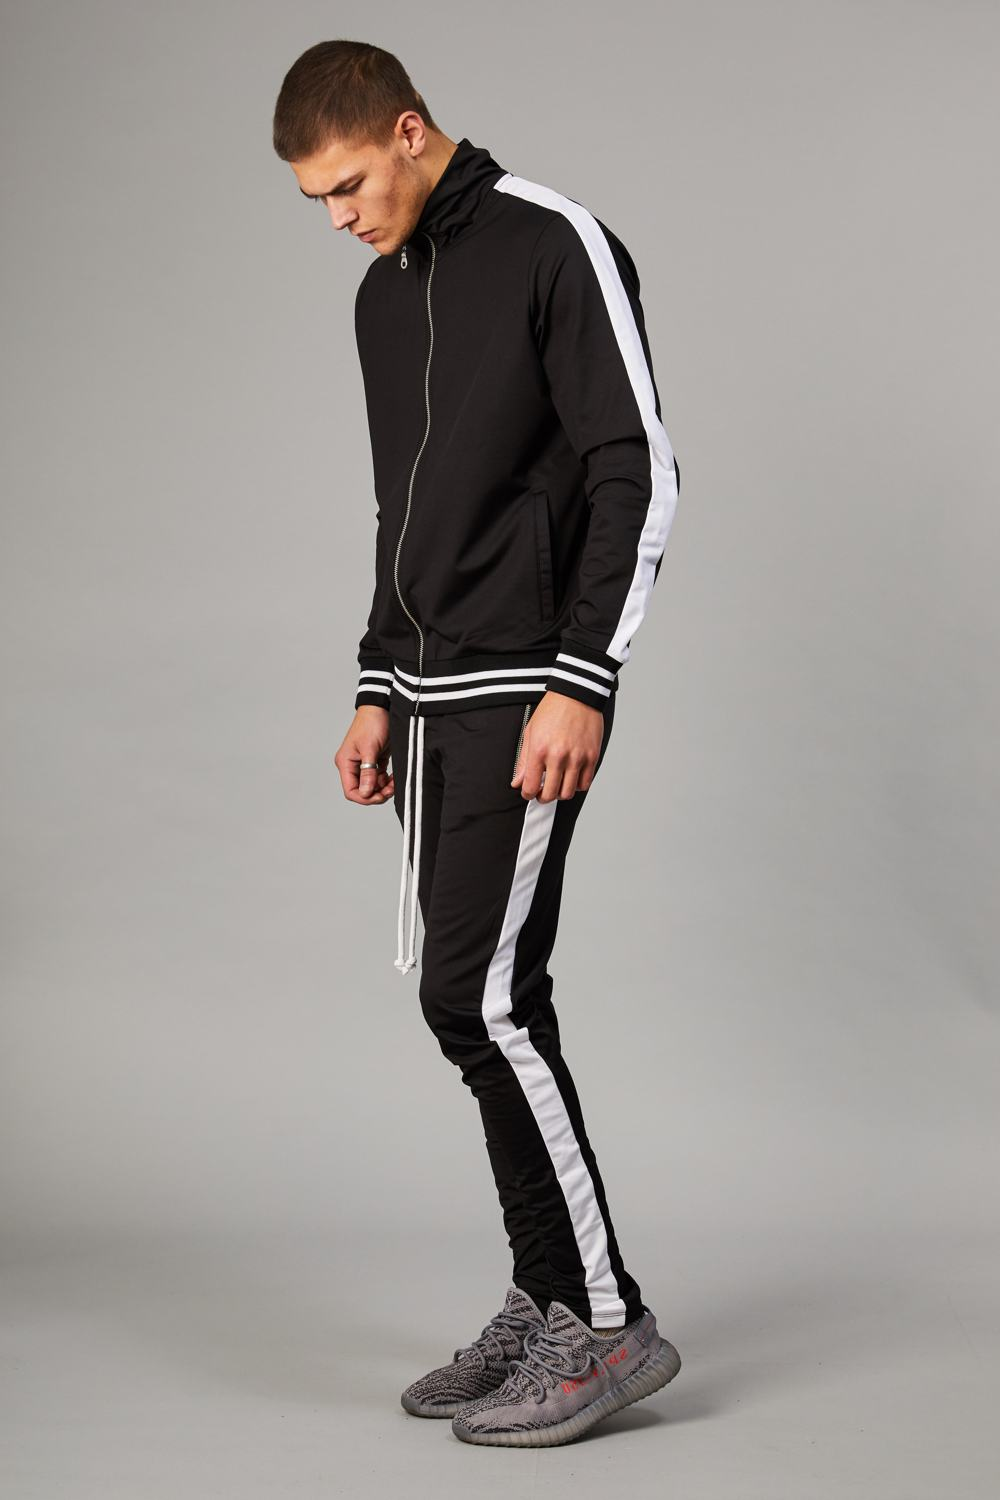 Criminal Damage Camden Track Top - Black/White - 2